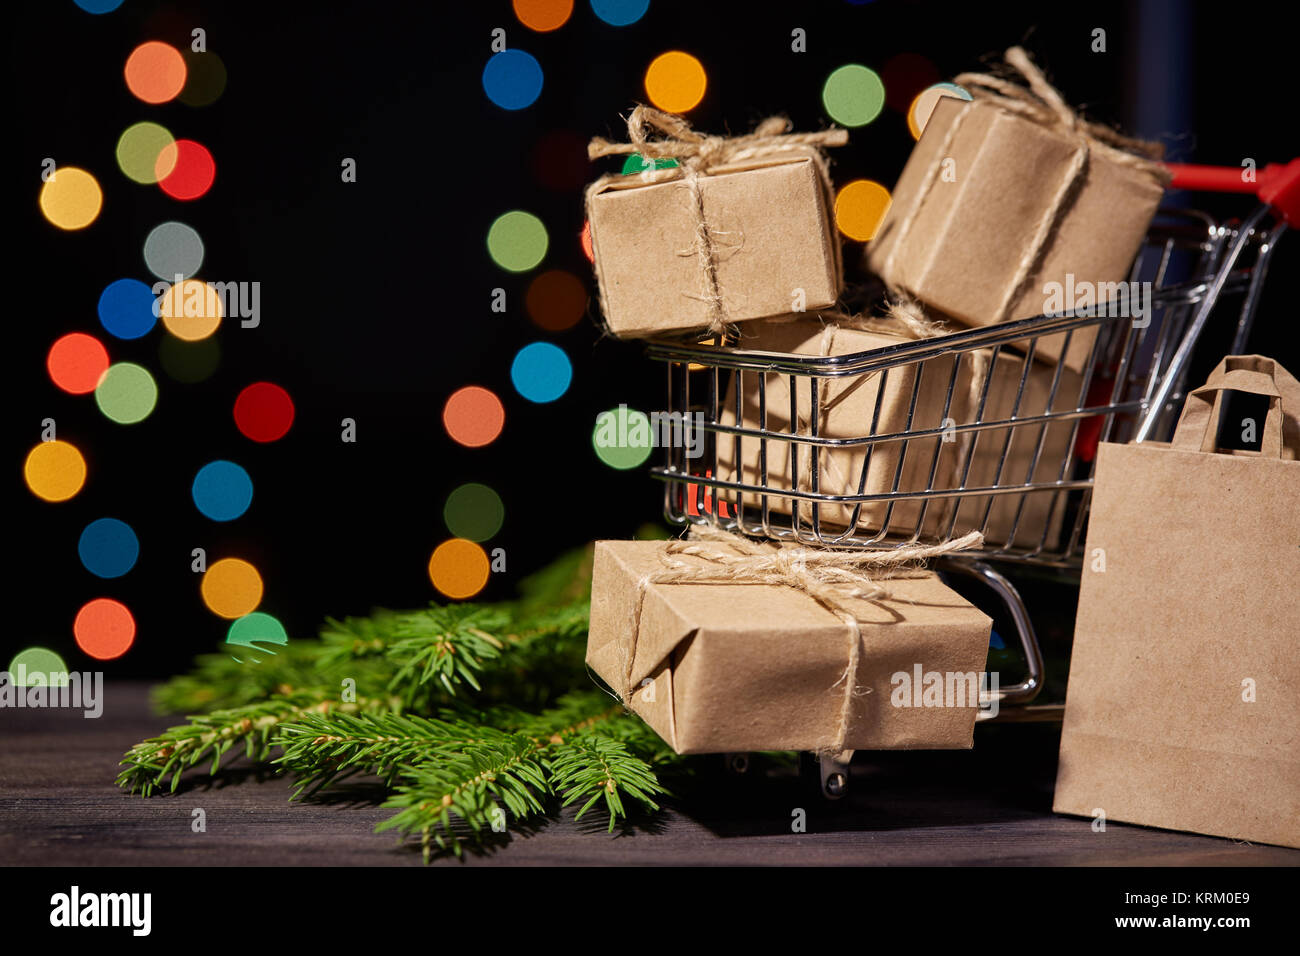 Christmas and New Year shopping. - Stock Image